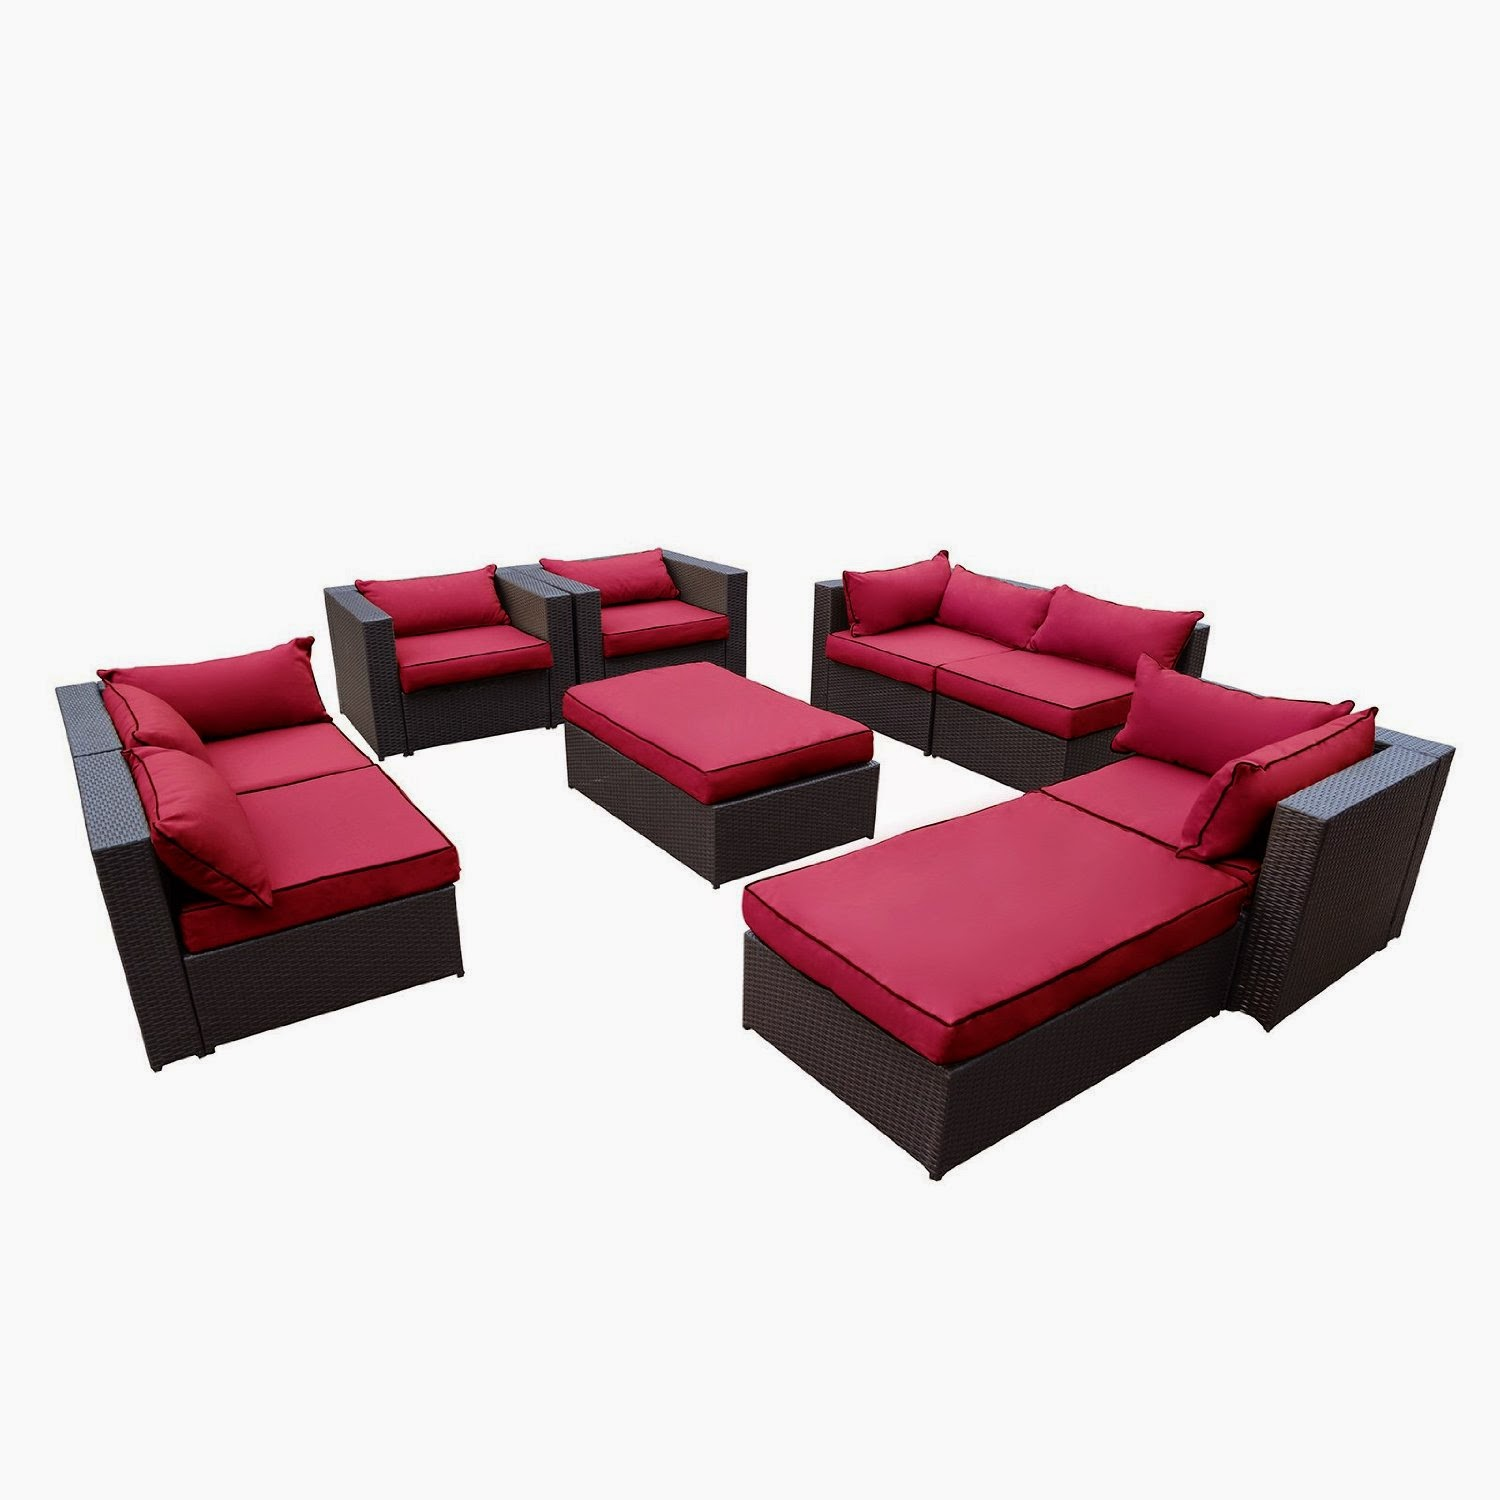 Outdoor patio rattan wicker furniture sectional sofa for What is wicker furniture